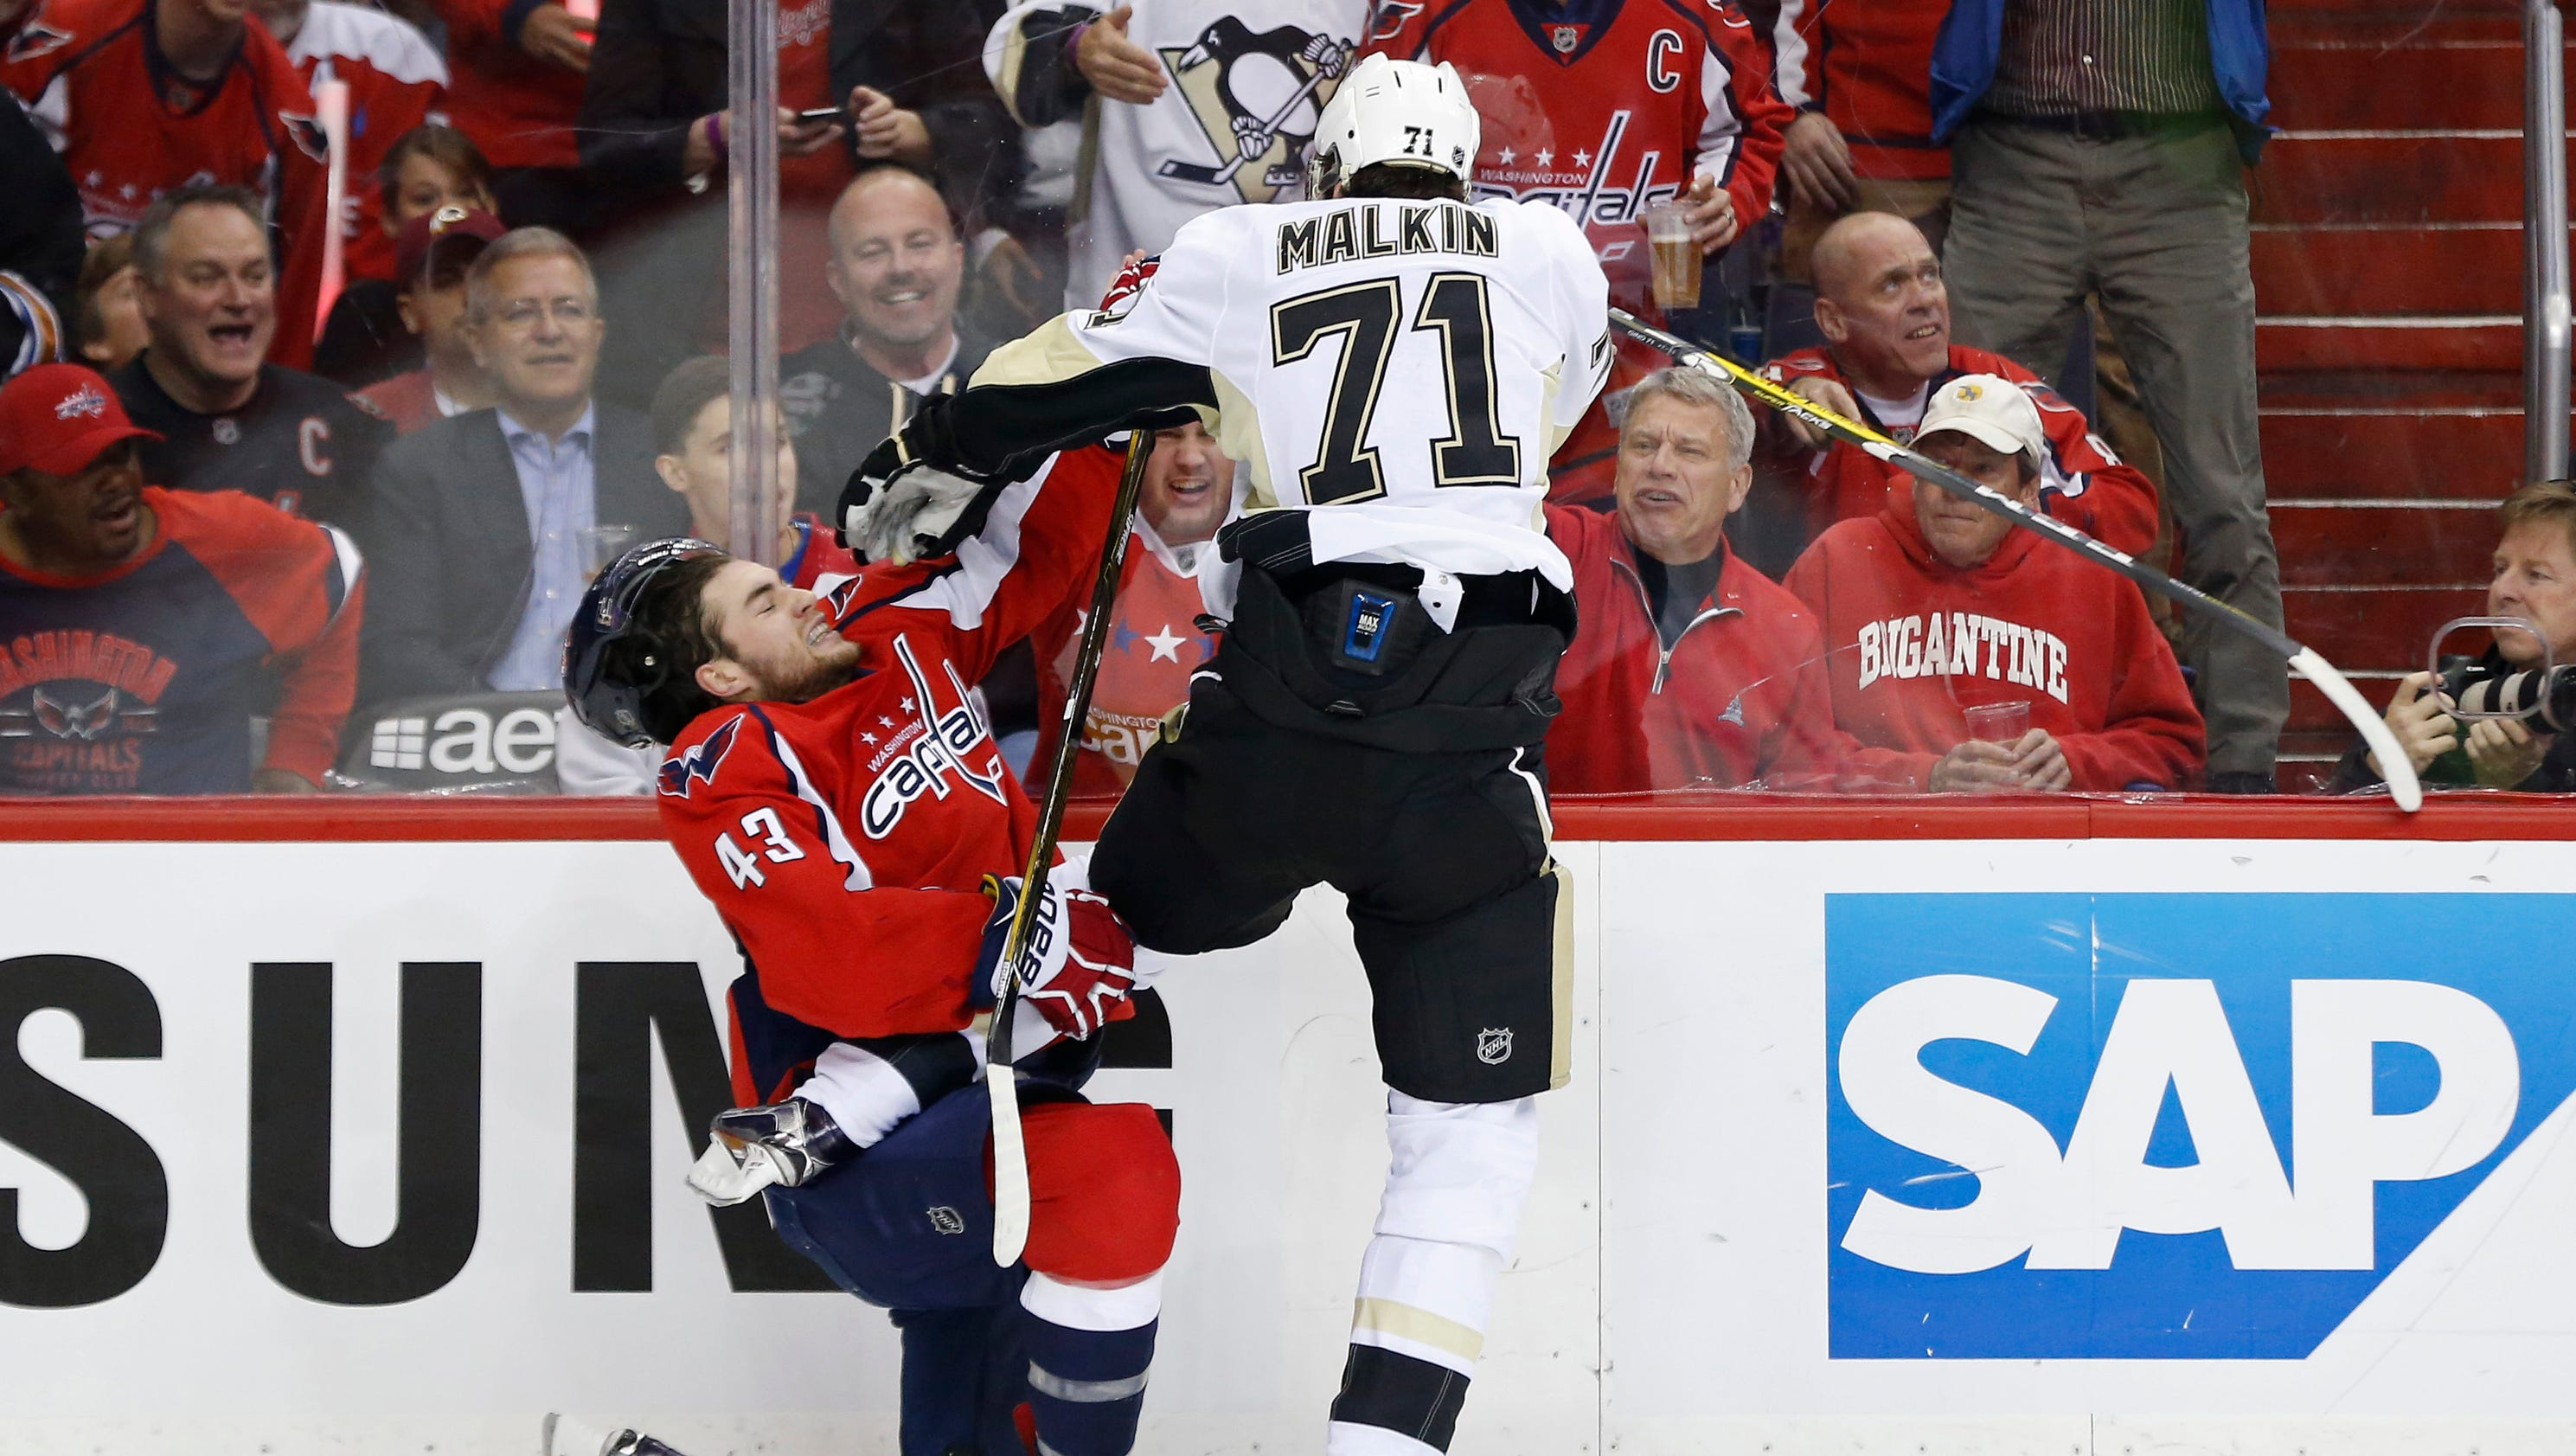 635974878991065868-usp-nhl-stanley-cup-playoffs-pittsburgh-penguins-001